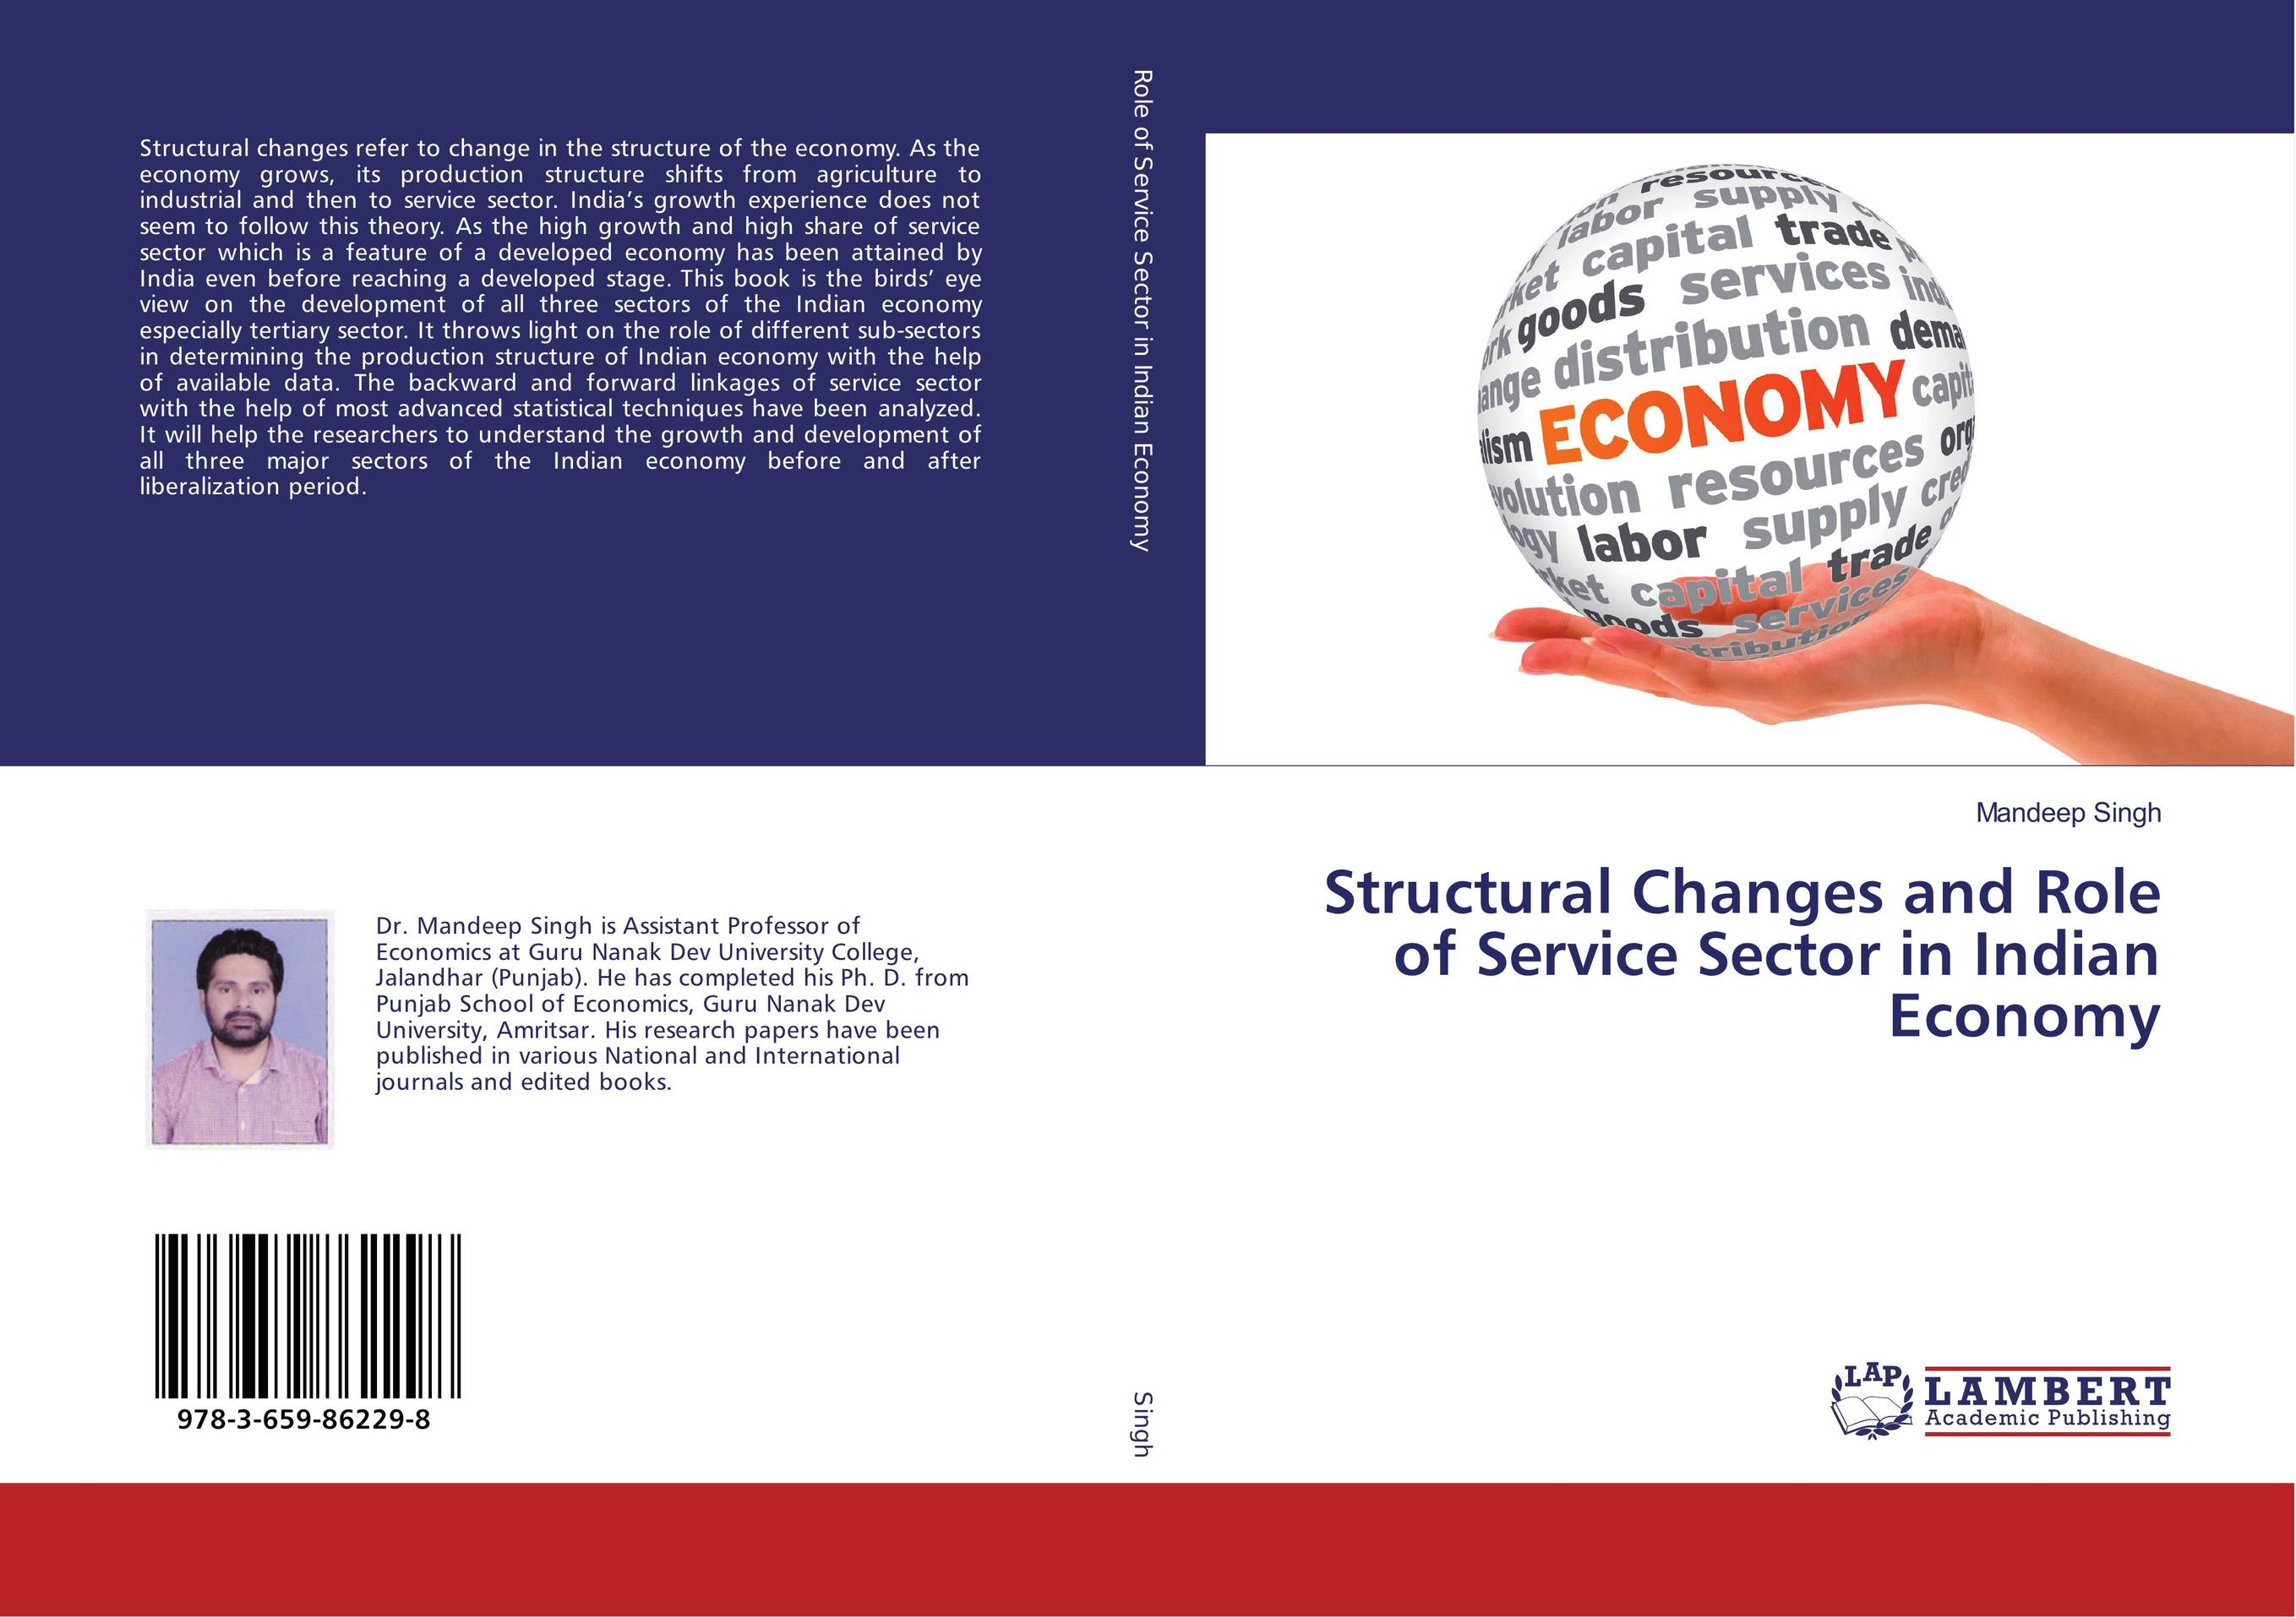 Structural Changes and Role of Service Sector in Indian Economy kazi rifat ahmed simu akter and kushal roy alternative development loom by reason of natural changes